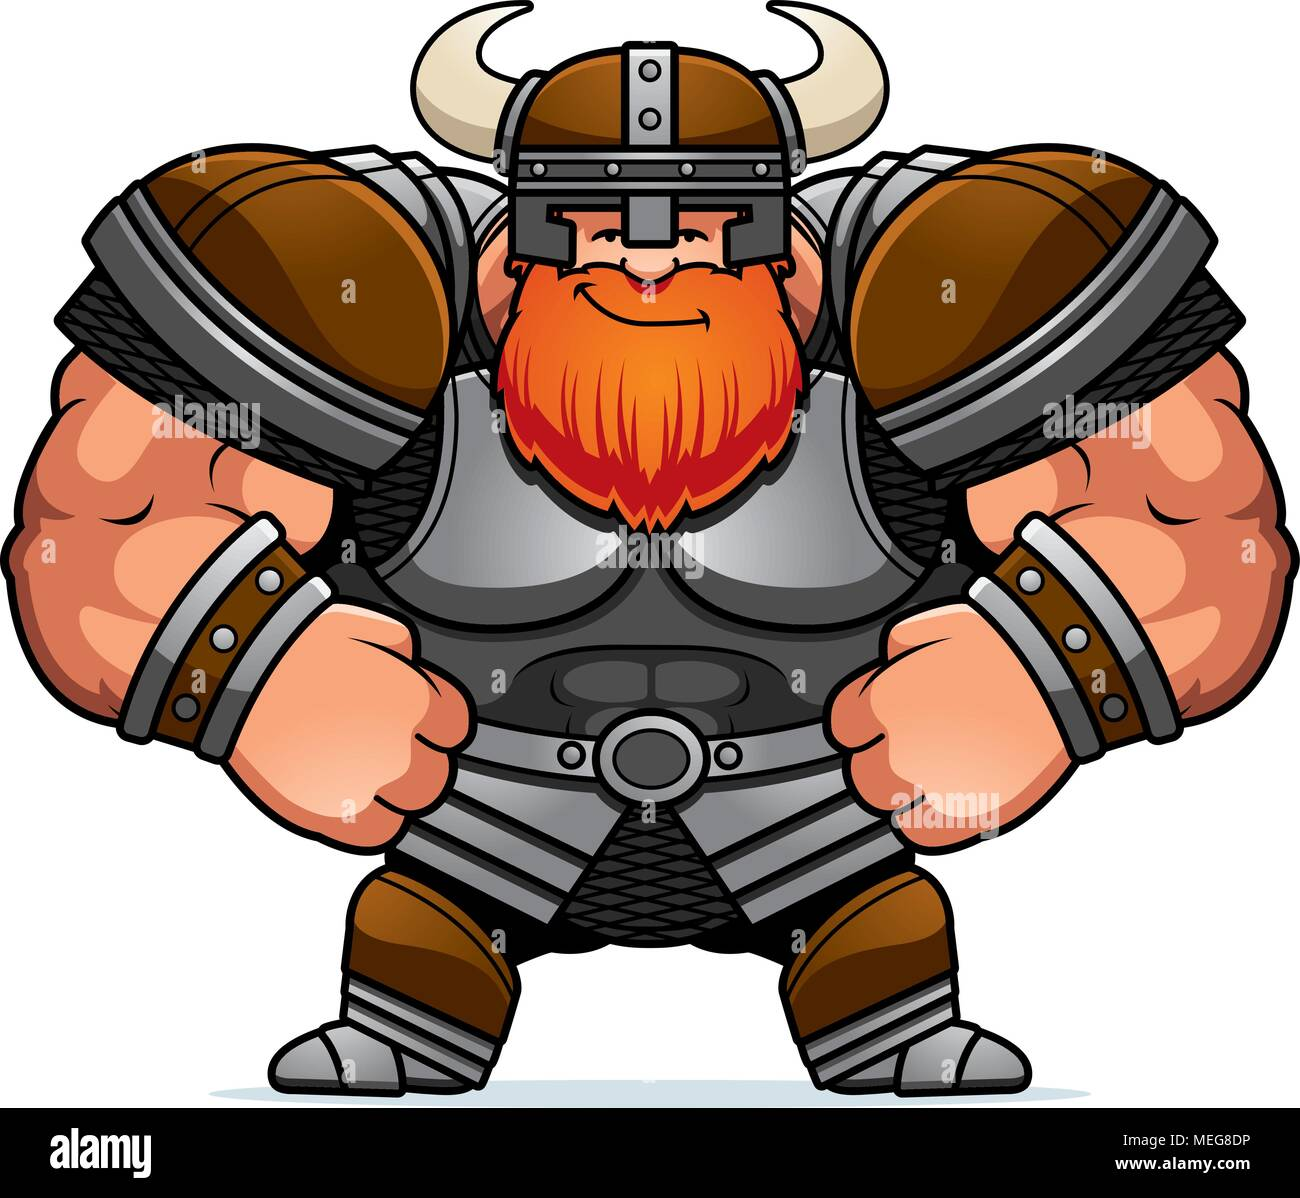 A Cartoon Illustration Of A Viking Looking Confident Stock Vector